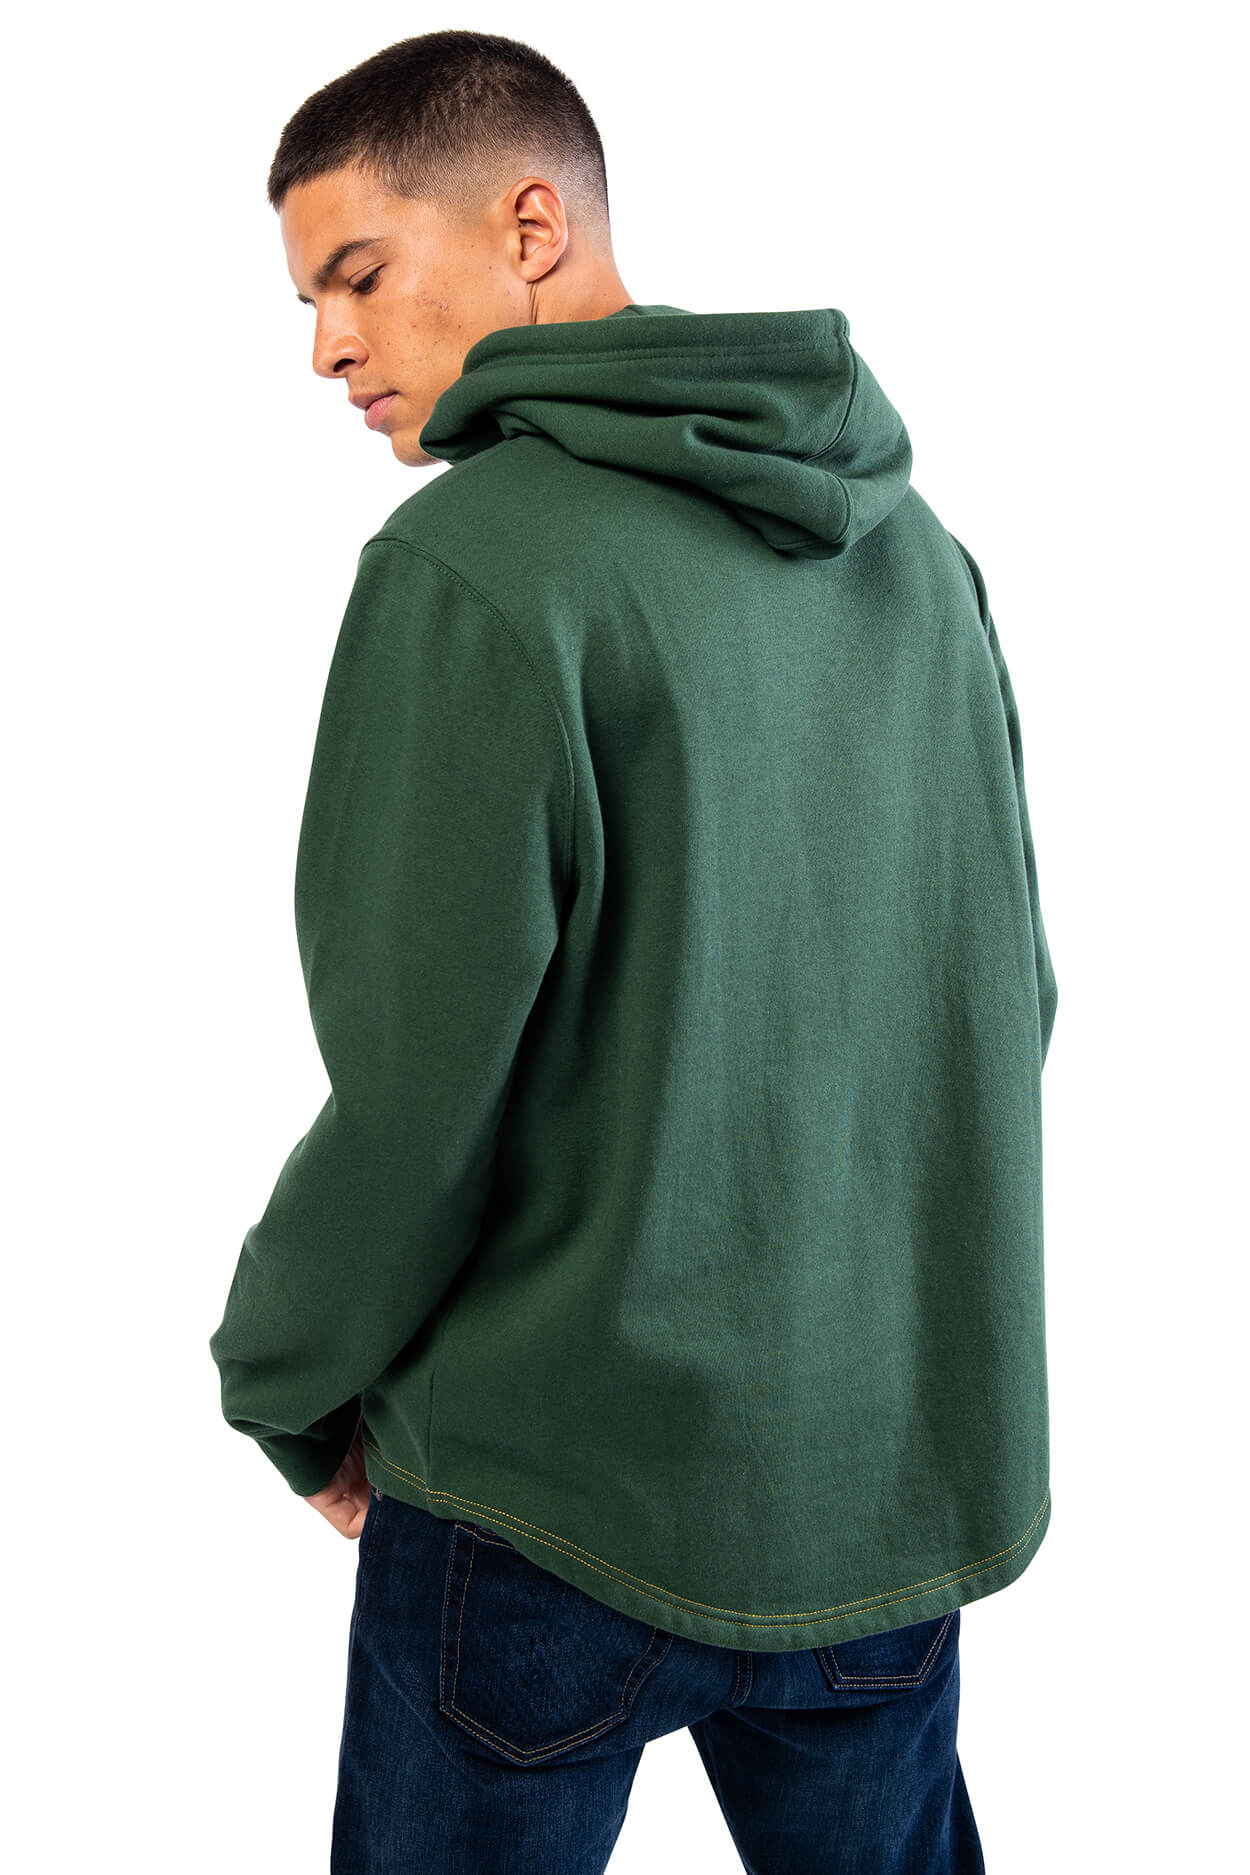 NFL Green Bay Packers Men's Embroidered Hoodie|Green Bay Packers